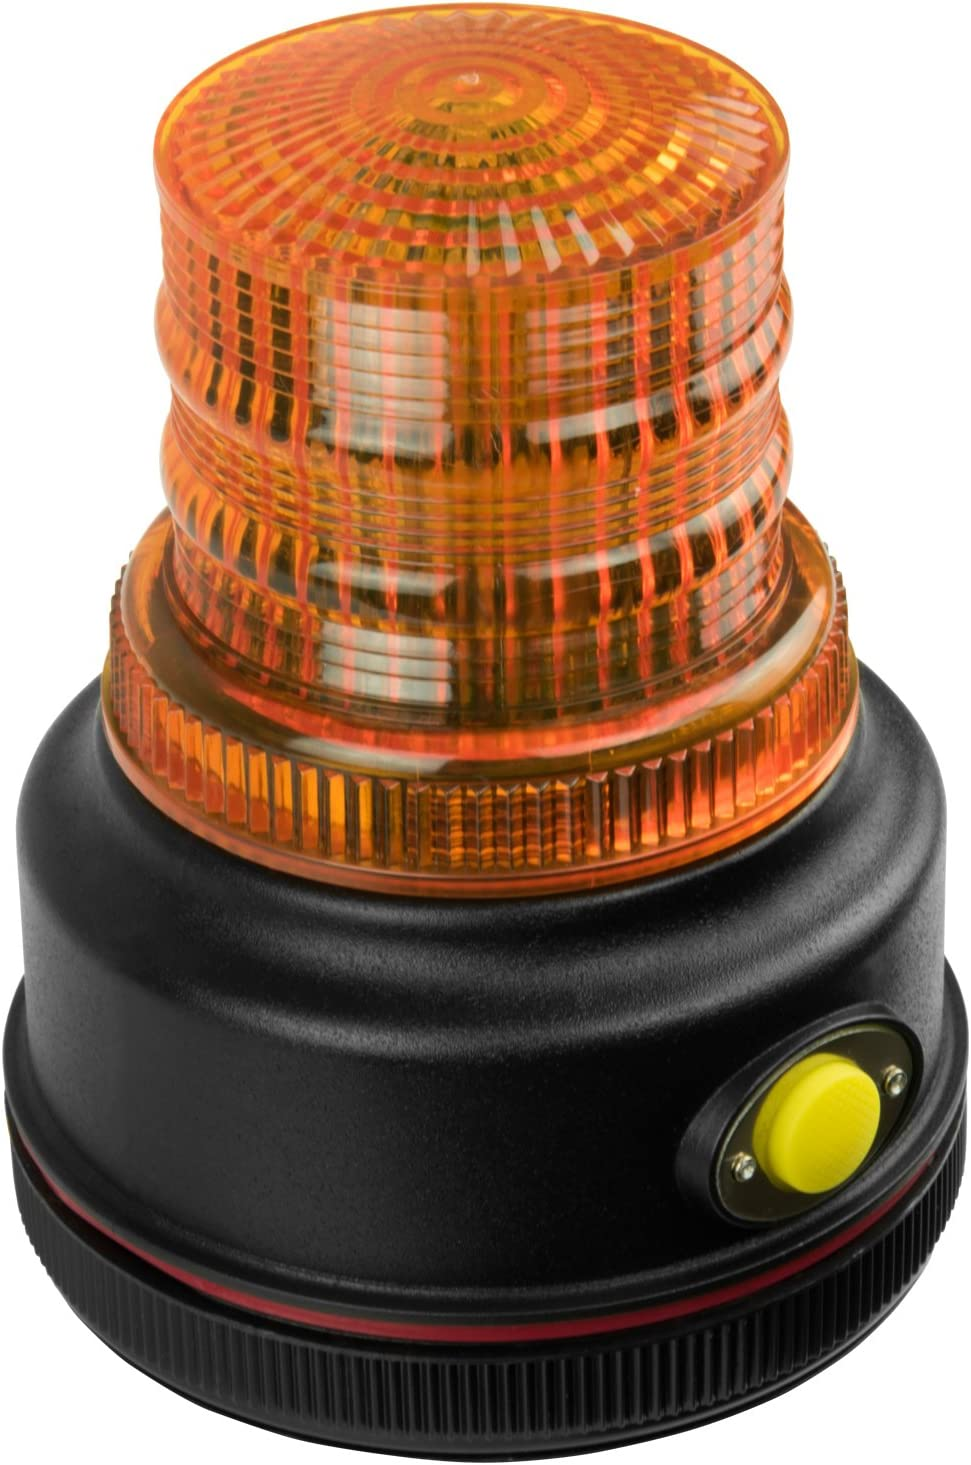 Blazer C43A LED Warning Beacon with Magnetic Base, Amber